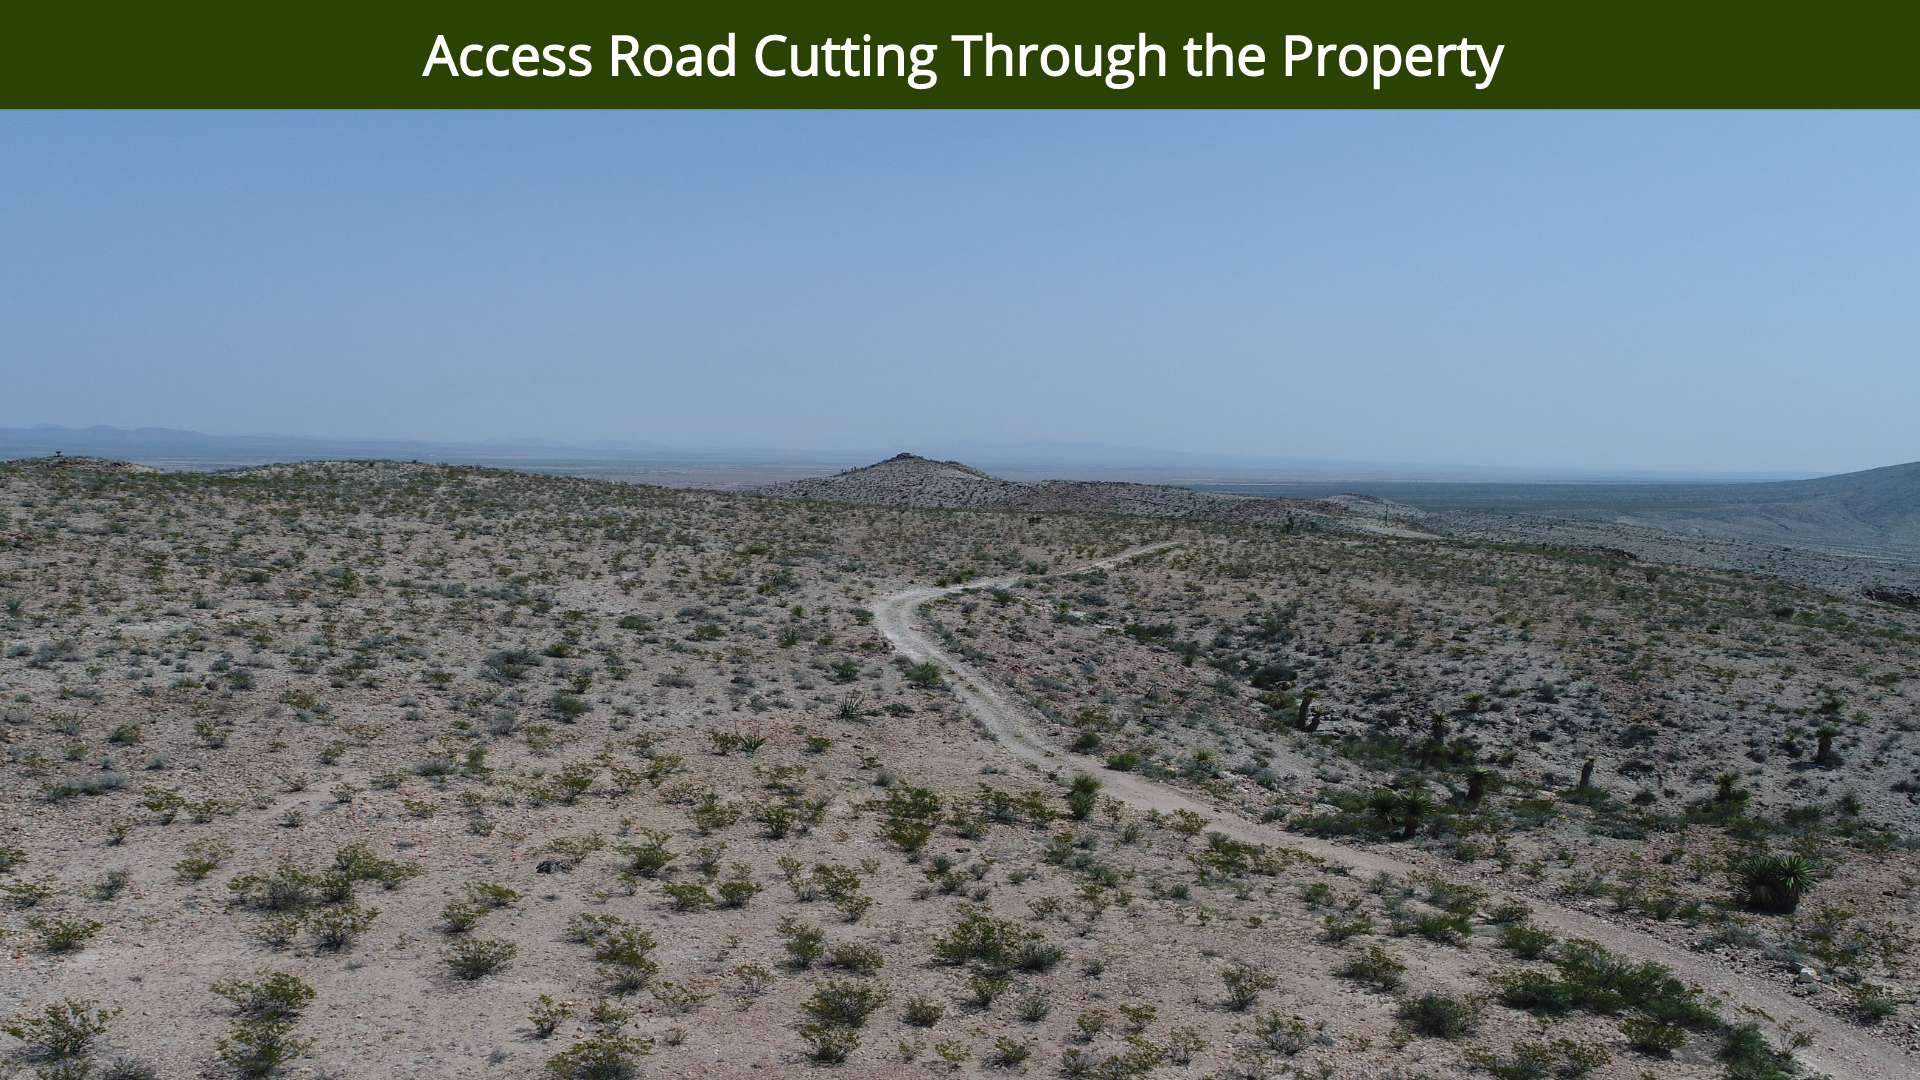 Access Road Cutting Through the Property